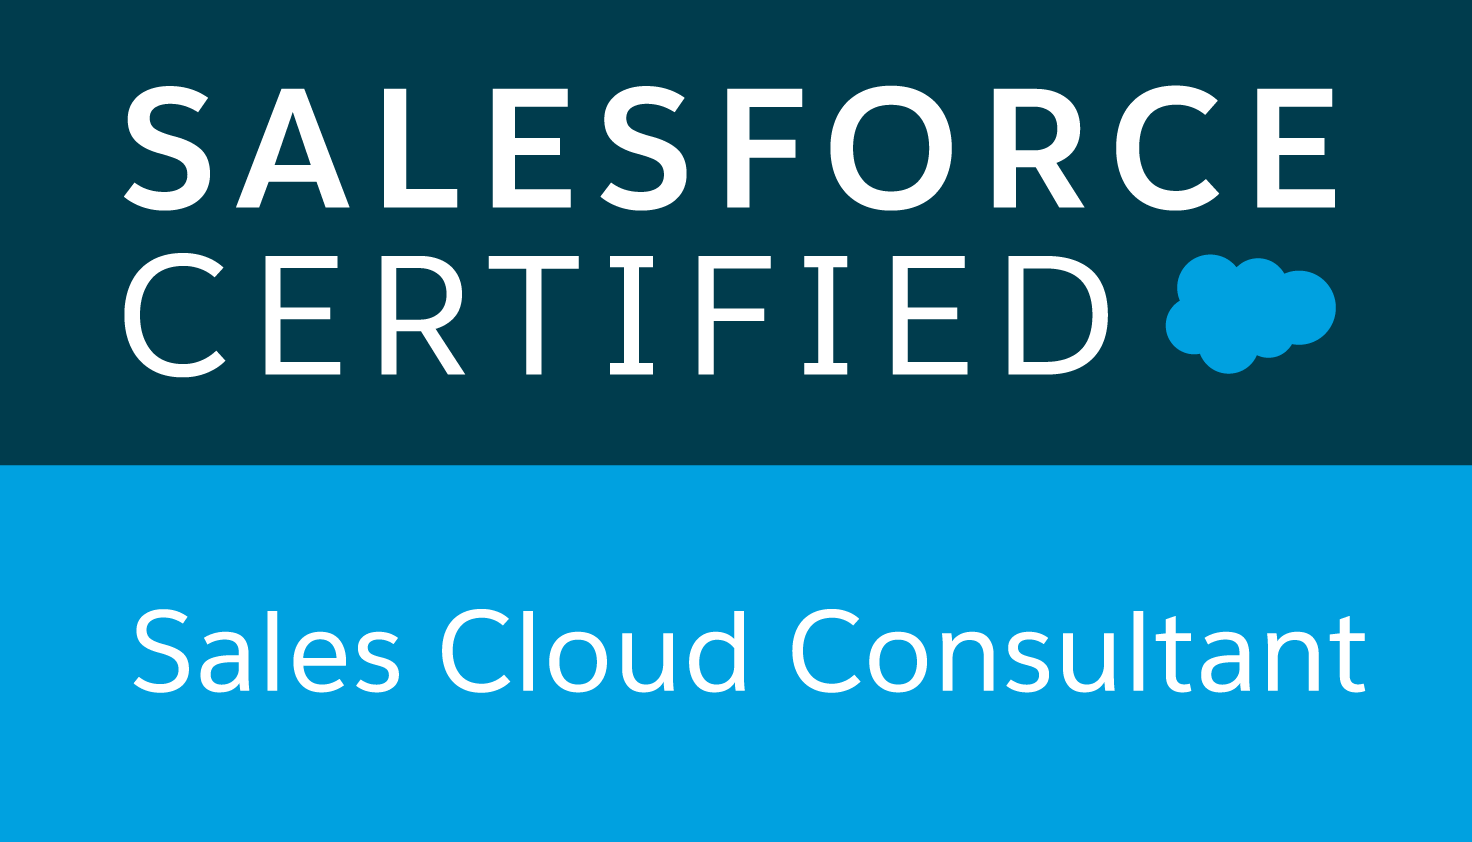 Salesforce Certified Sales Cloud Consultant